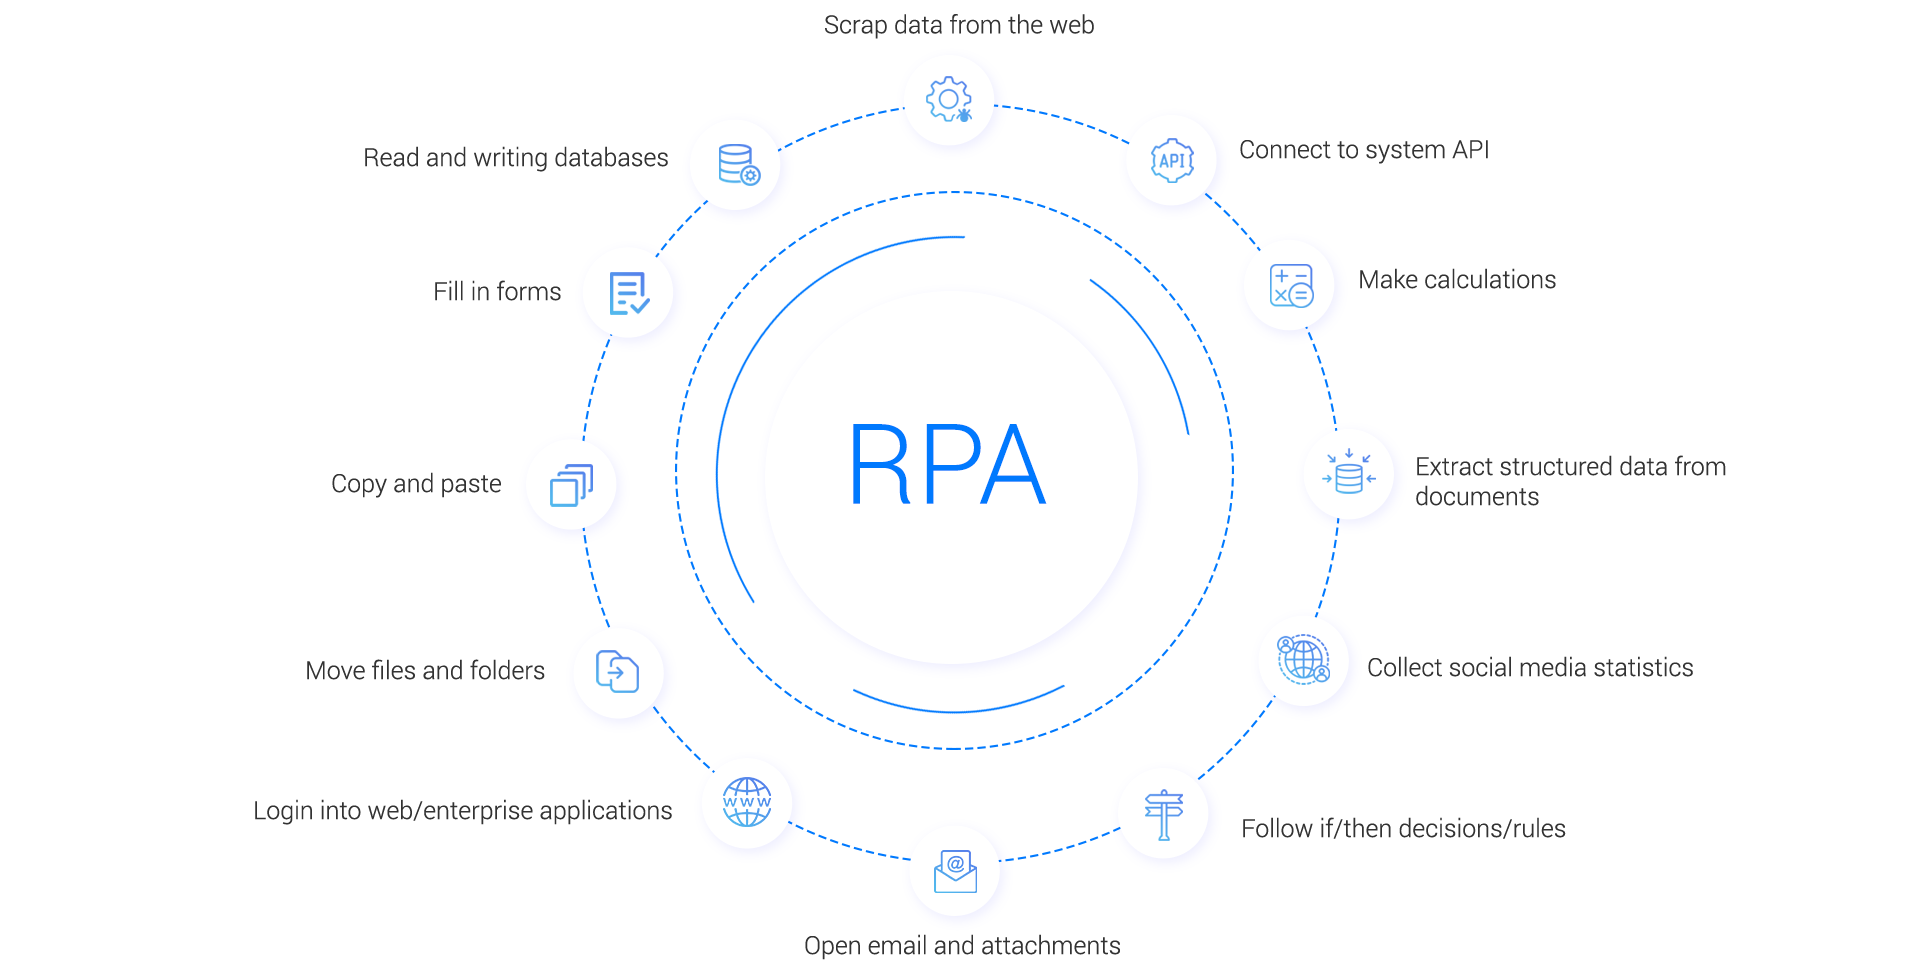 RPA bots built on the SnatchBot platform can